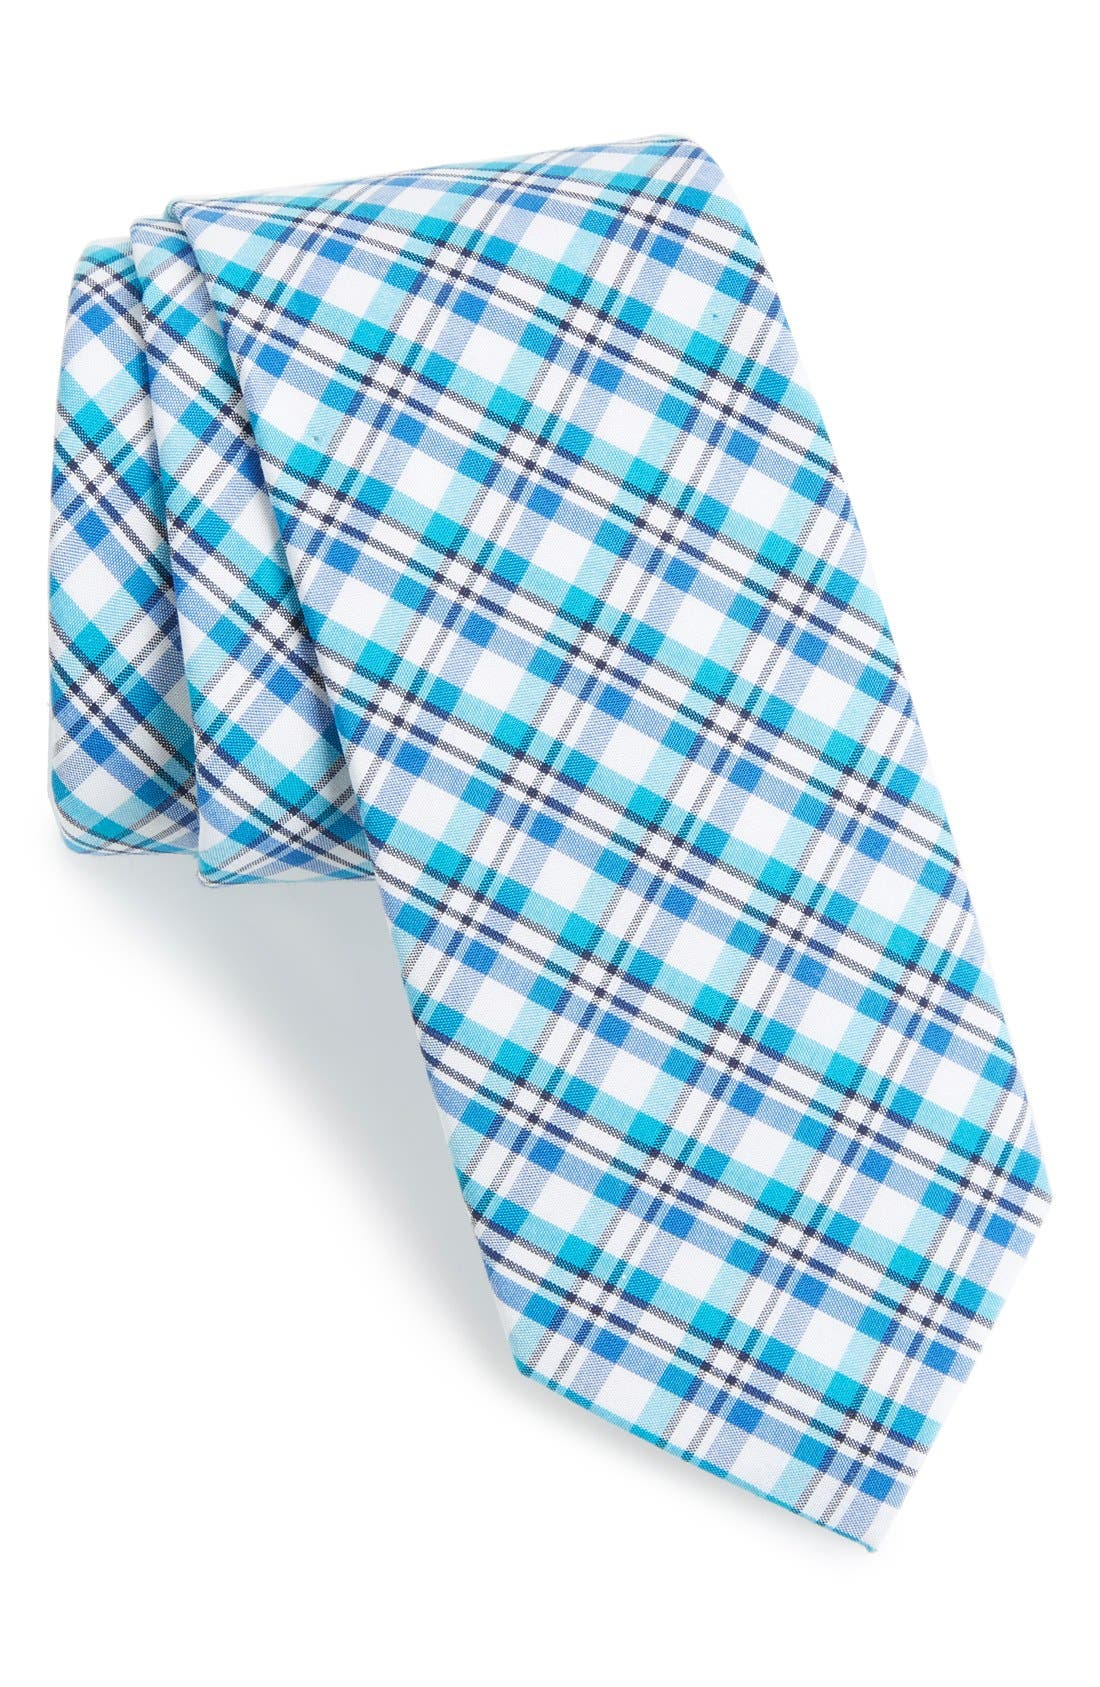 'Boomer' Plaid Cotton Tie,                             Main thumbnail 2, color,